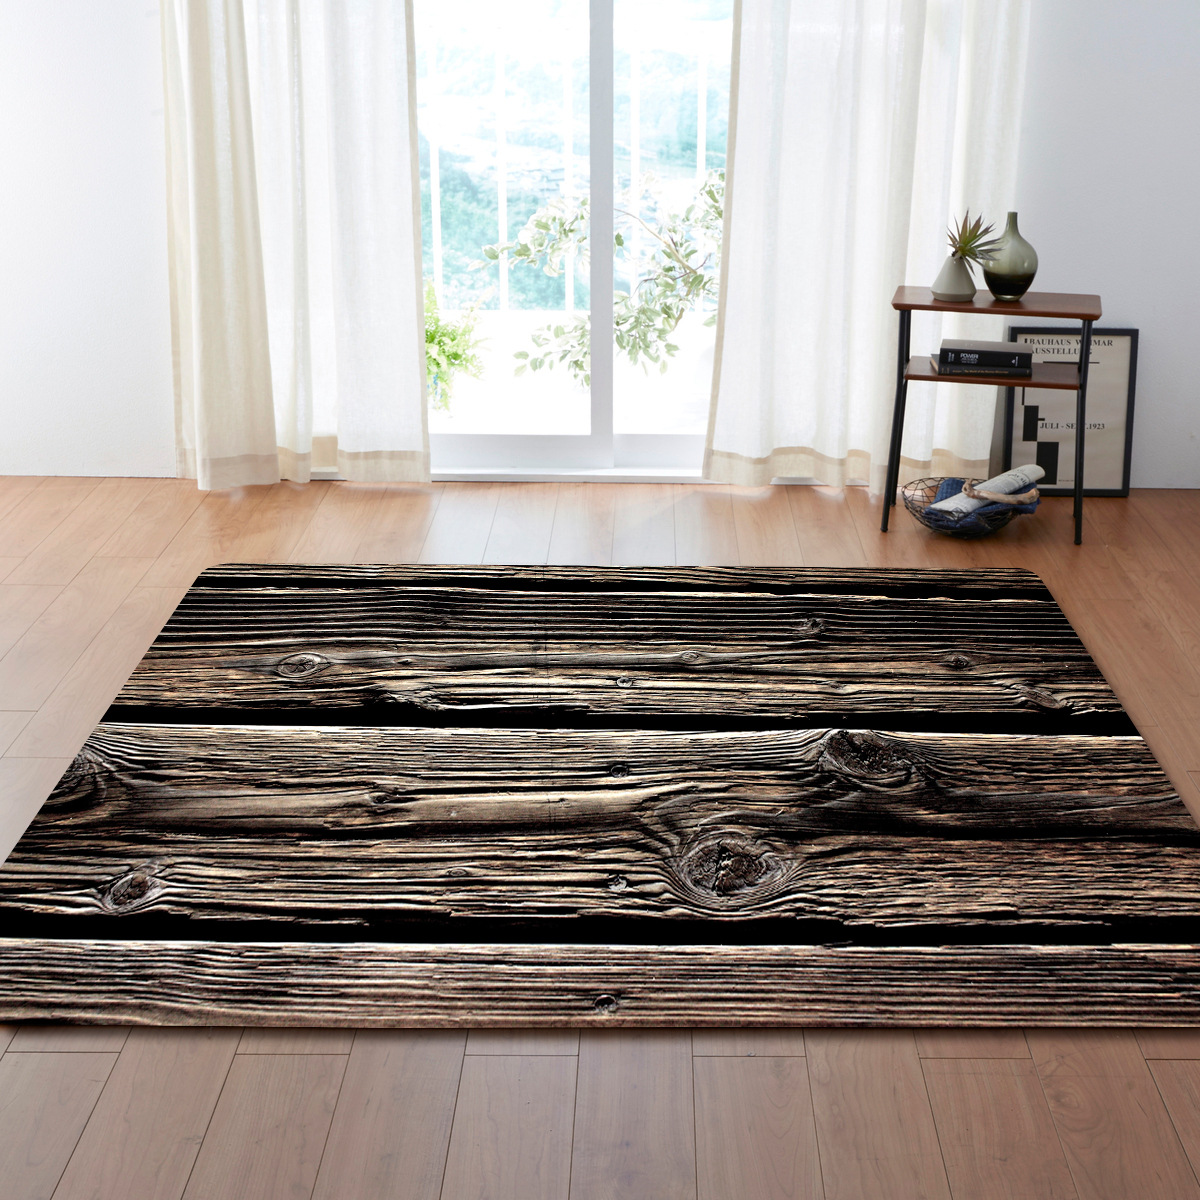 WUJIE Anti-slip Carpets For Living Room Modern Wood Grain Pattern Striped Area Rugs Large Floor Mat Room Decoration